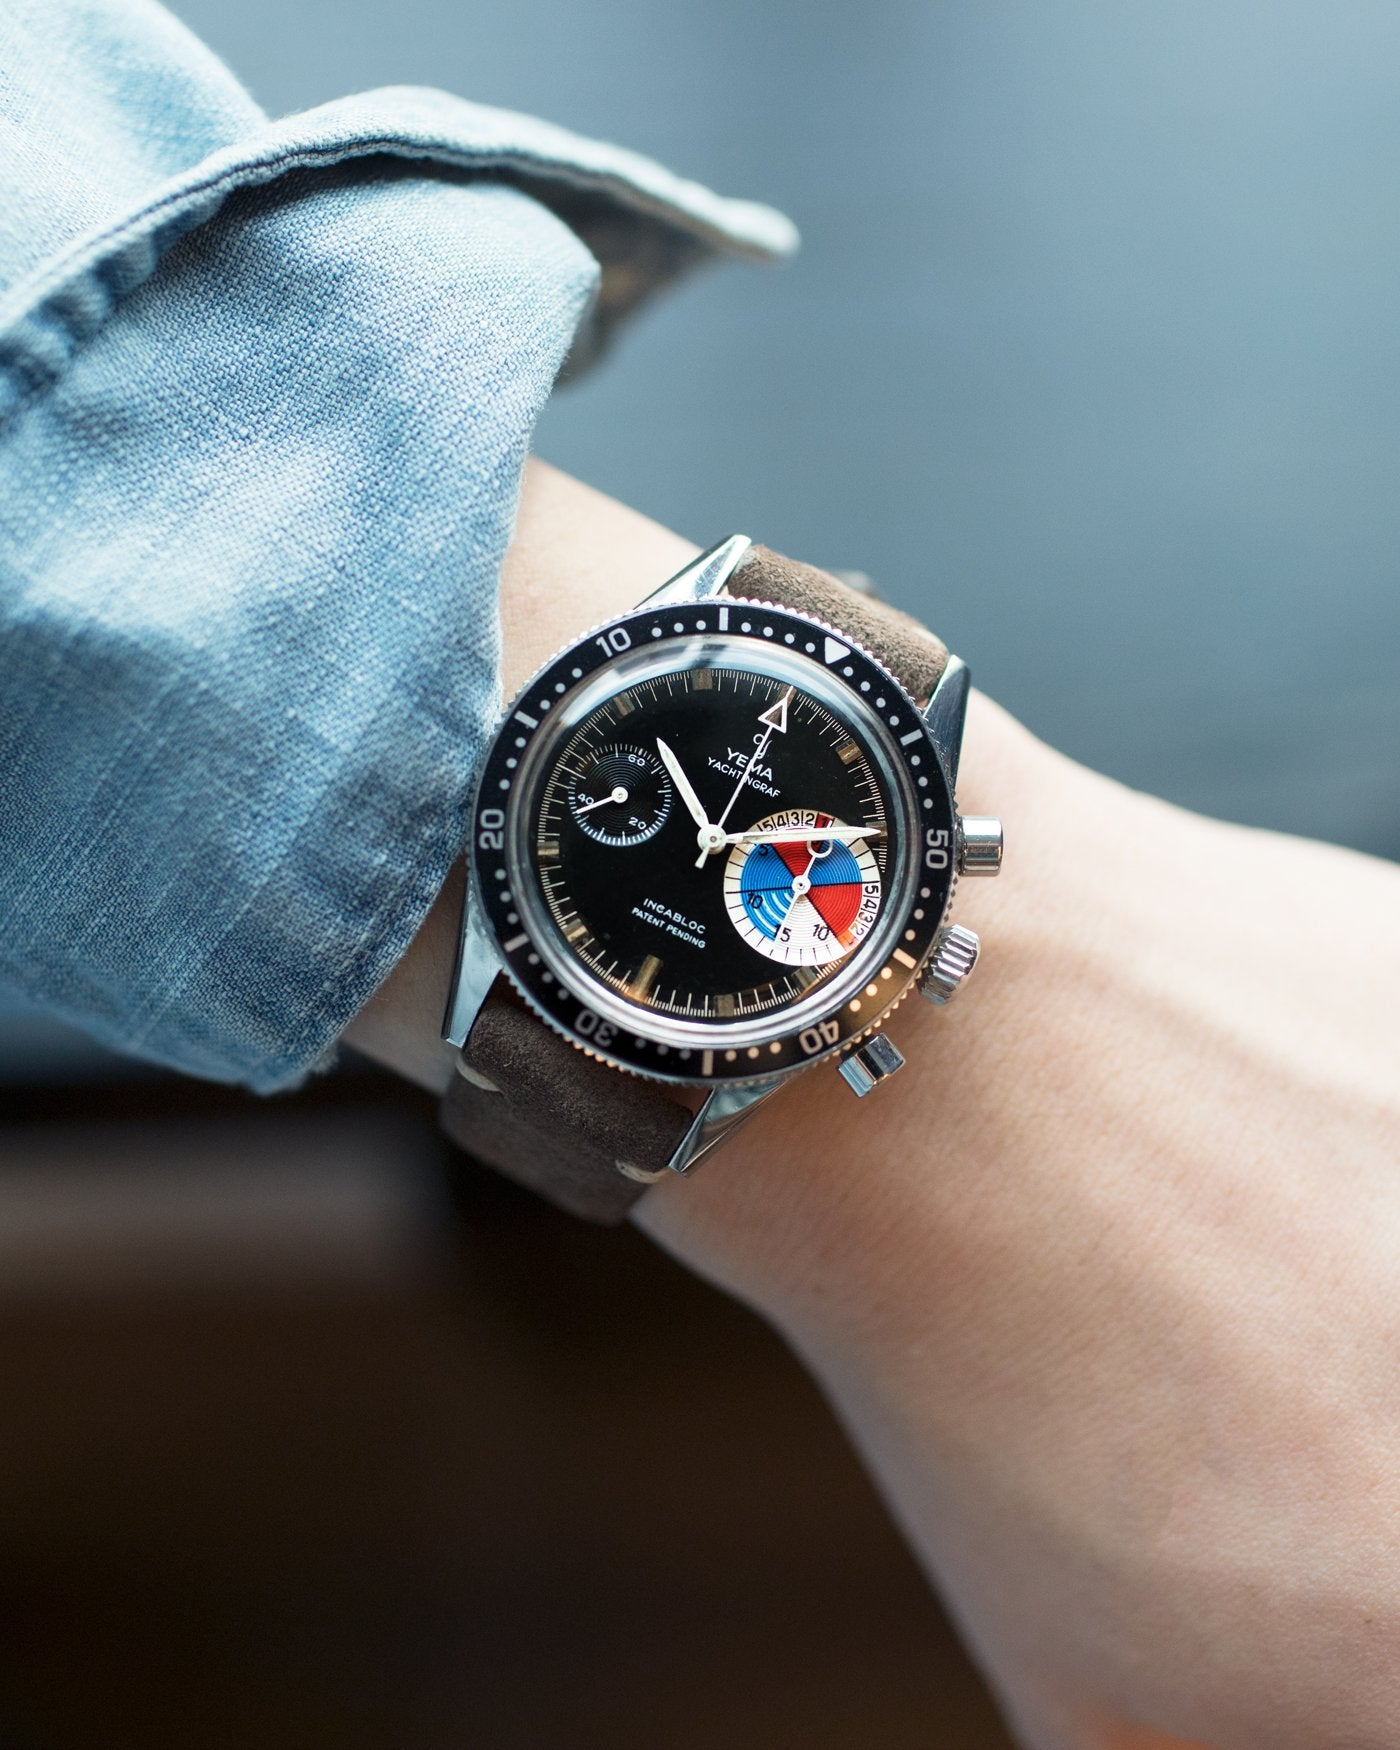 Yema Yachtingraf Regat lifestyle wristshot in The Complications Lost to Time for A Collected Man London